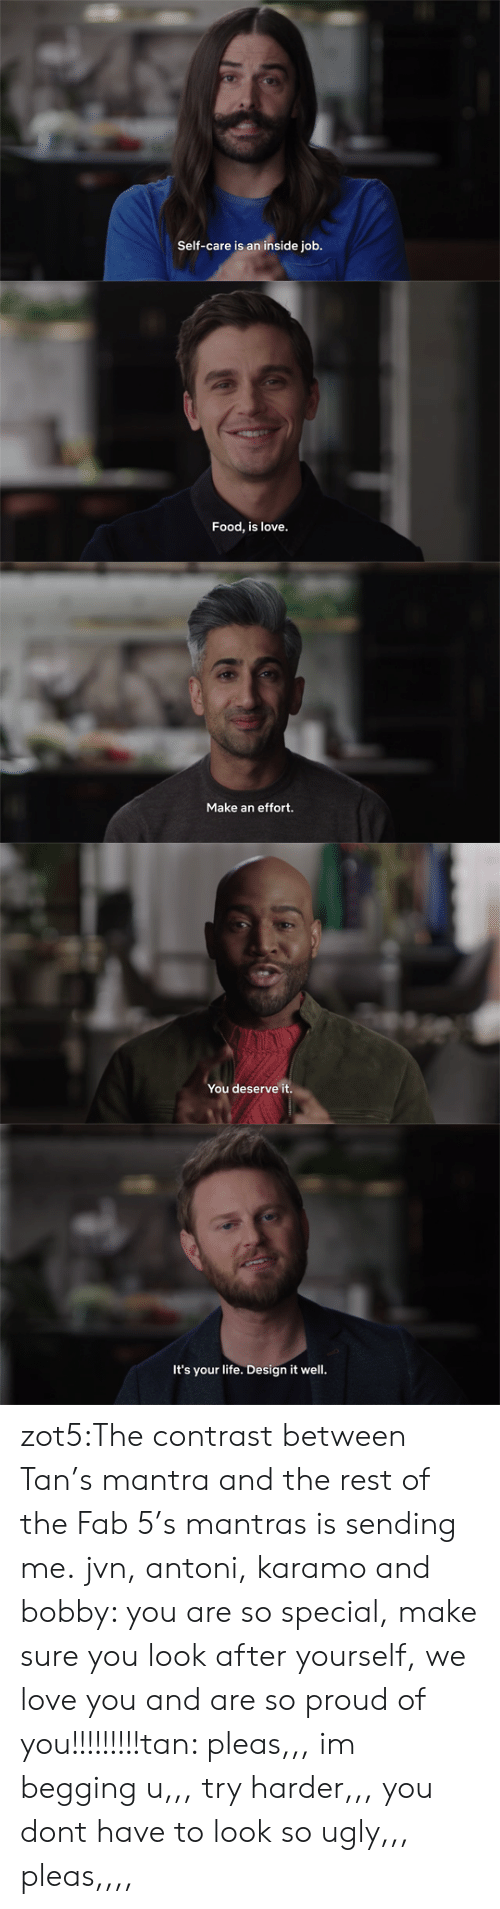 fab: Self-care is an inside job.   Food, is love.   Make an effort.   You deserve it.   It's your life. Design it well. zot5:The contrast between Tan's mantra and the rest of the Fab 5's mantras is sending me.  jvn, antoni, karamo and bobby: you are so special, make sure you look after yourself, we love you and are so proud of you!!!!!!!!!tan: pleas,,, im begging u,,, try harder,,, you dont have to look so ugly,,, pleas,,,,